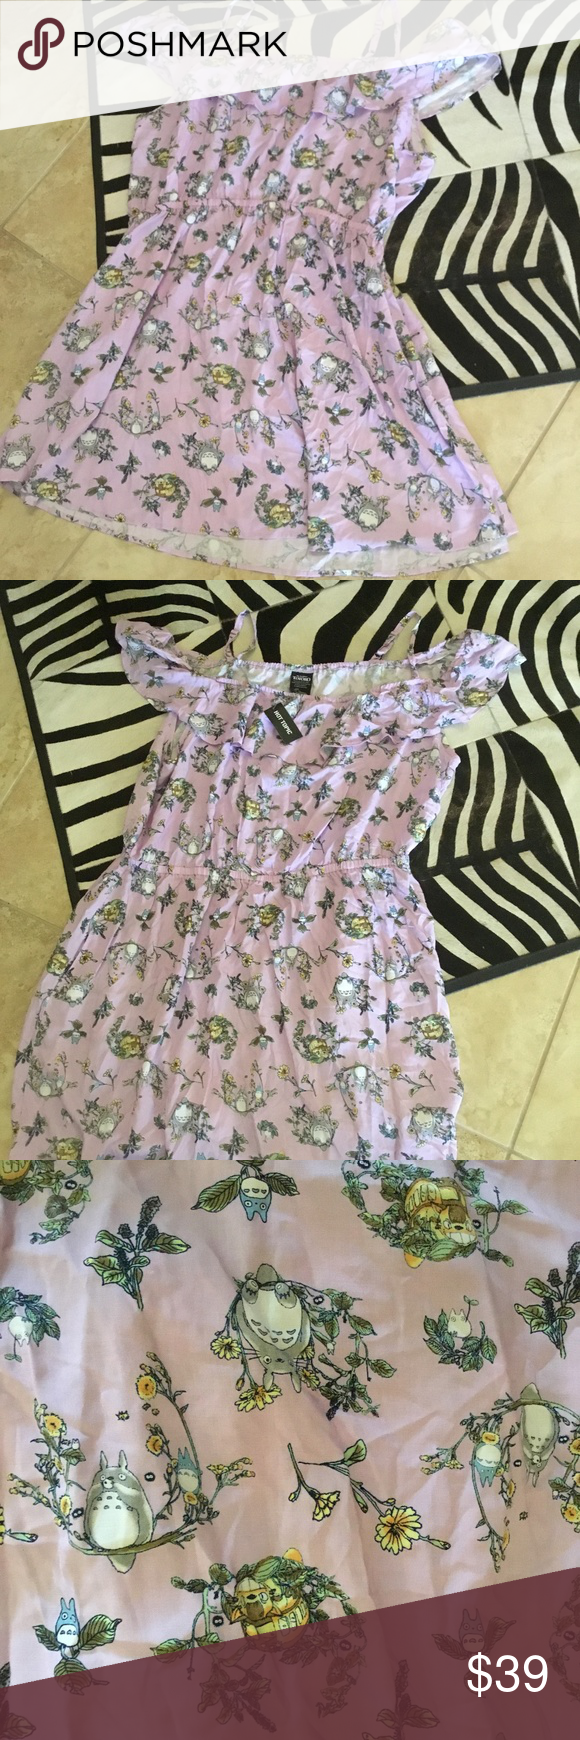 Hot Topic Studio Ghibli dress size 4x new Hot Topic cute Studio Ghibli dress size 4x new with tags elastic waist fits 3x/4x Hot Topic Dresses #hottopicclothes Hot Topic Studio Ghibli dress size 4x new Hot Topic cute Studio Ghibli dress size 4x new with tags elastic waist fits 3x/4x Hot Topic Dresses #hottopicclothes